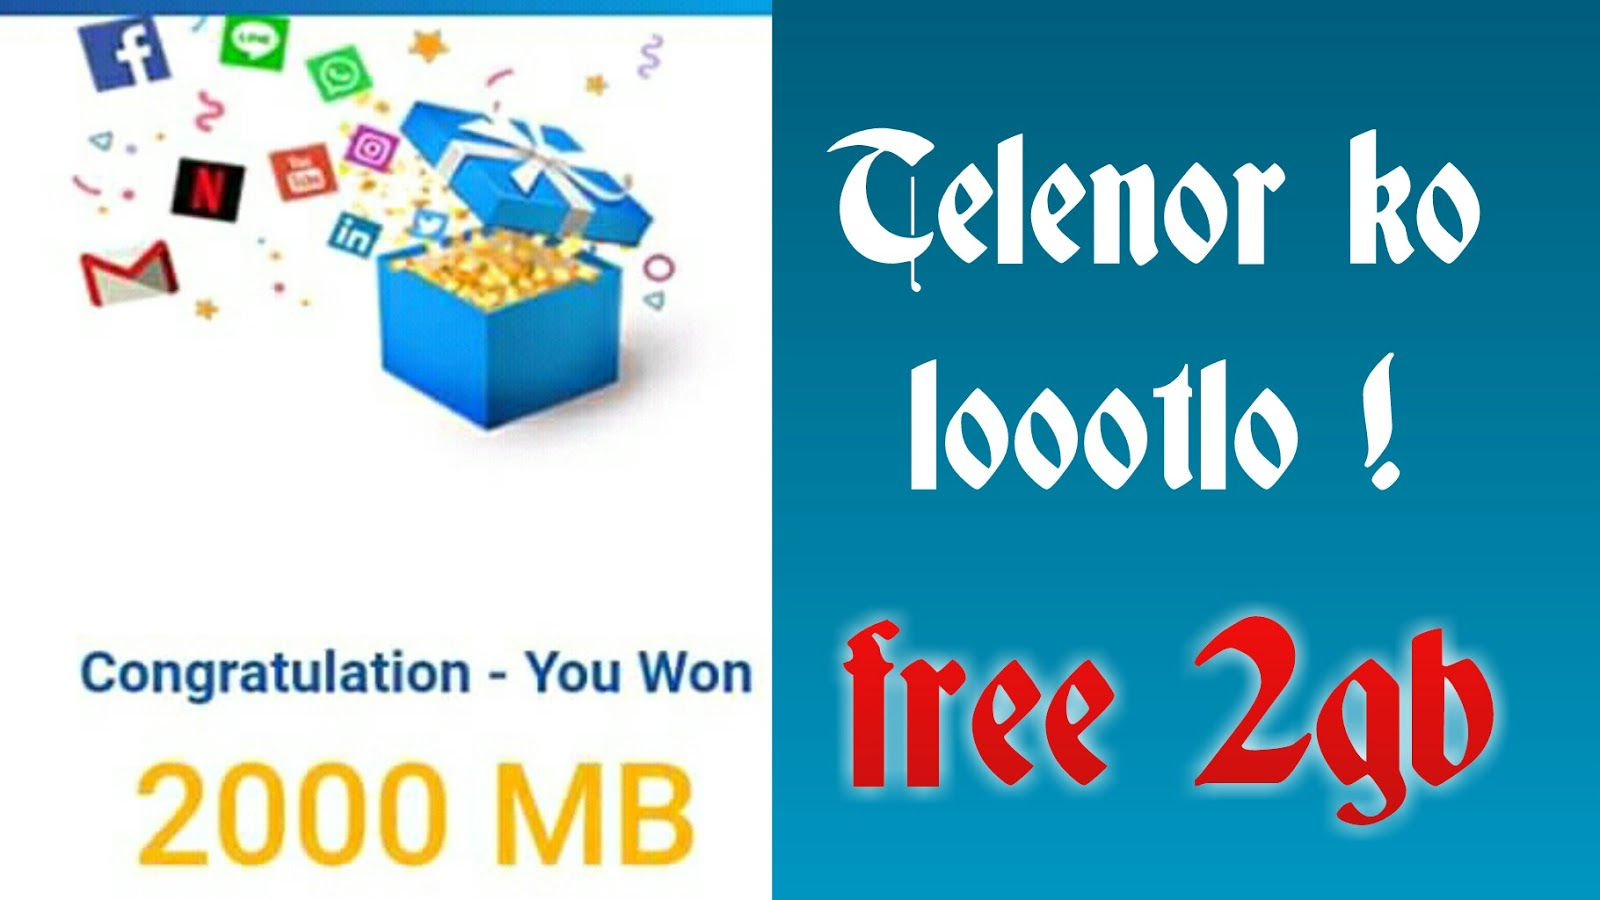 My telenor app today quiz for 2gb free internet? - Touch 2 Gain